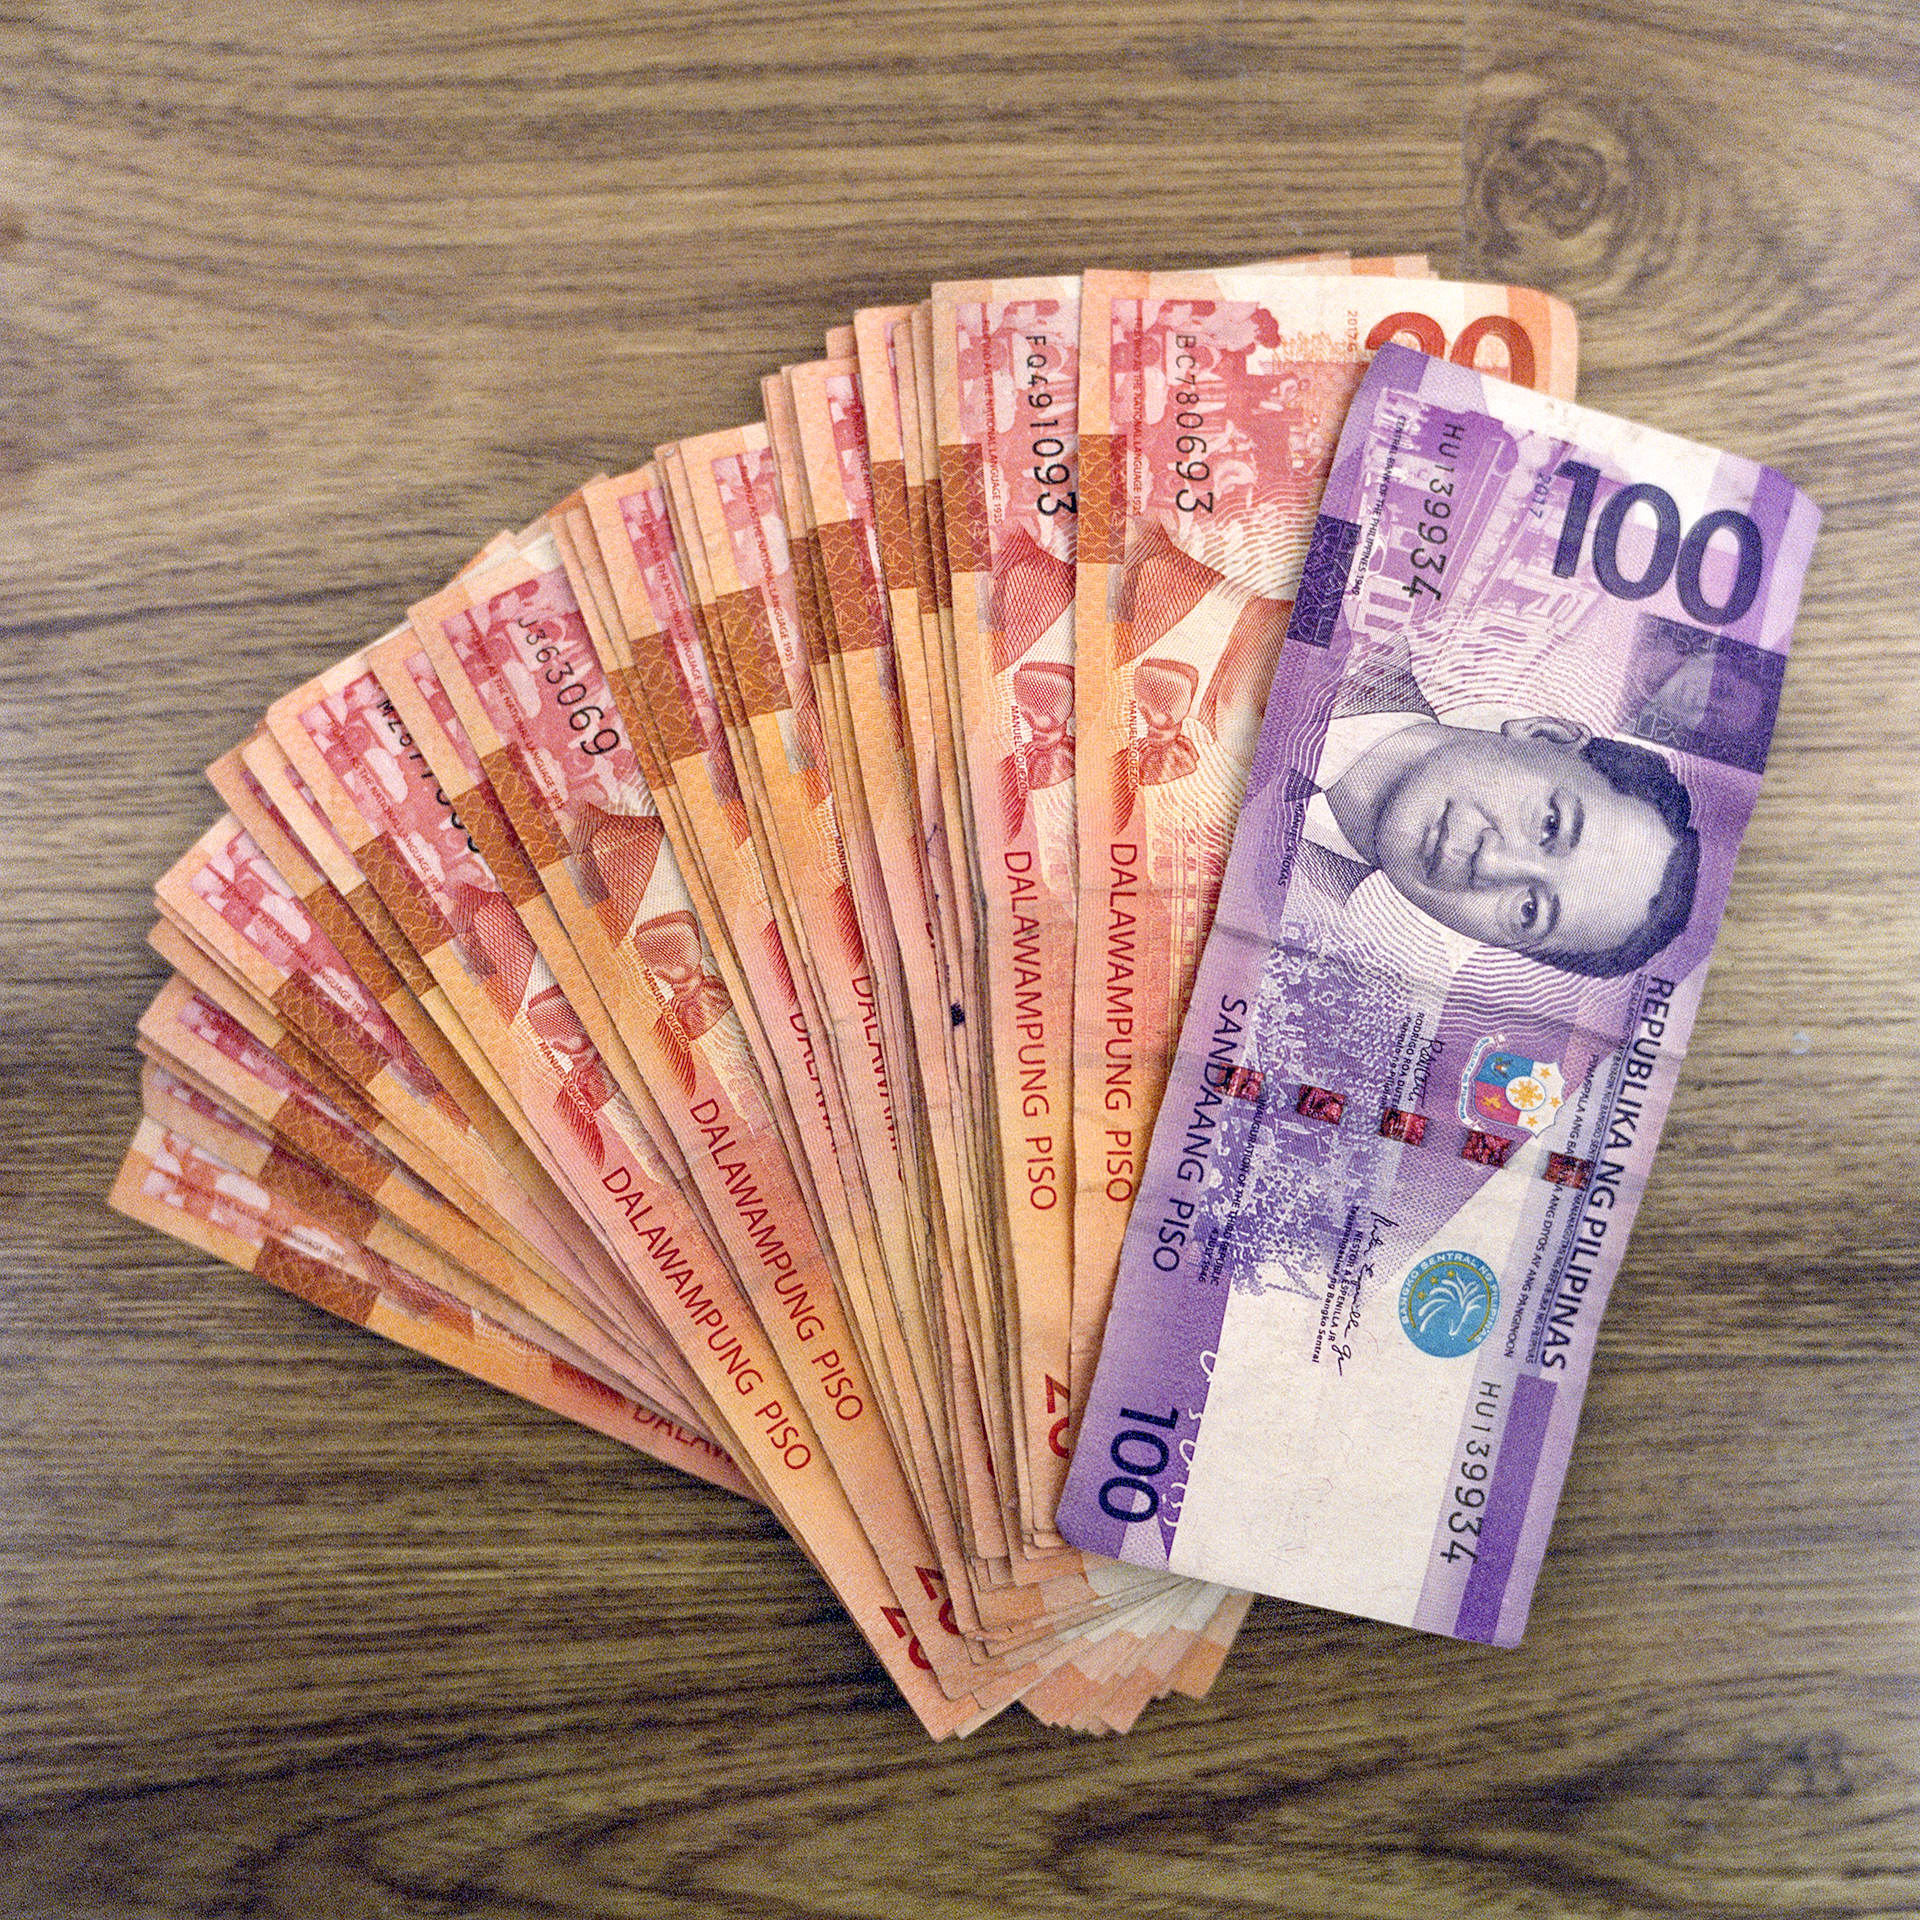 A pile of Filipino Pesos